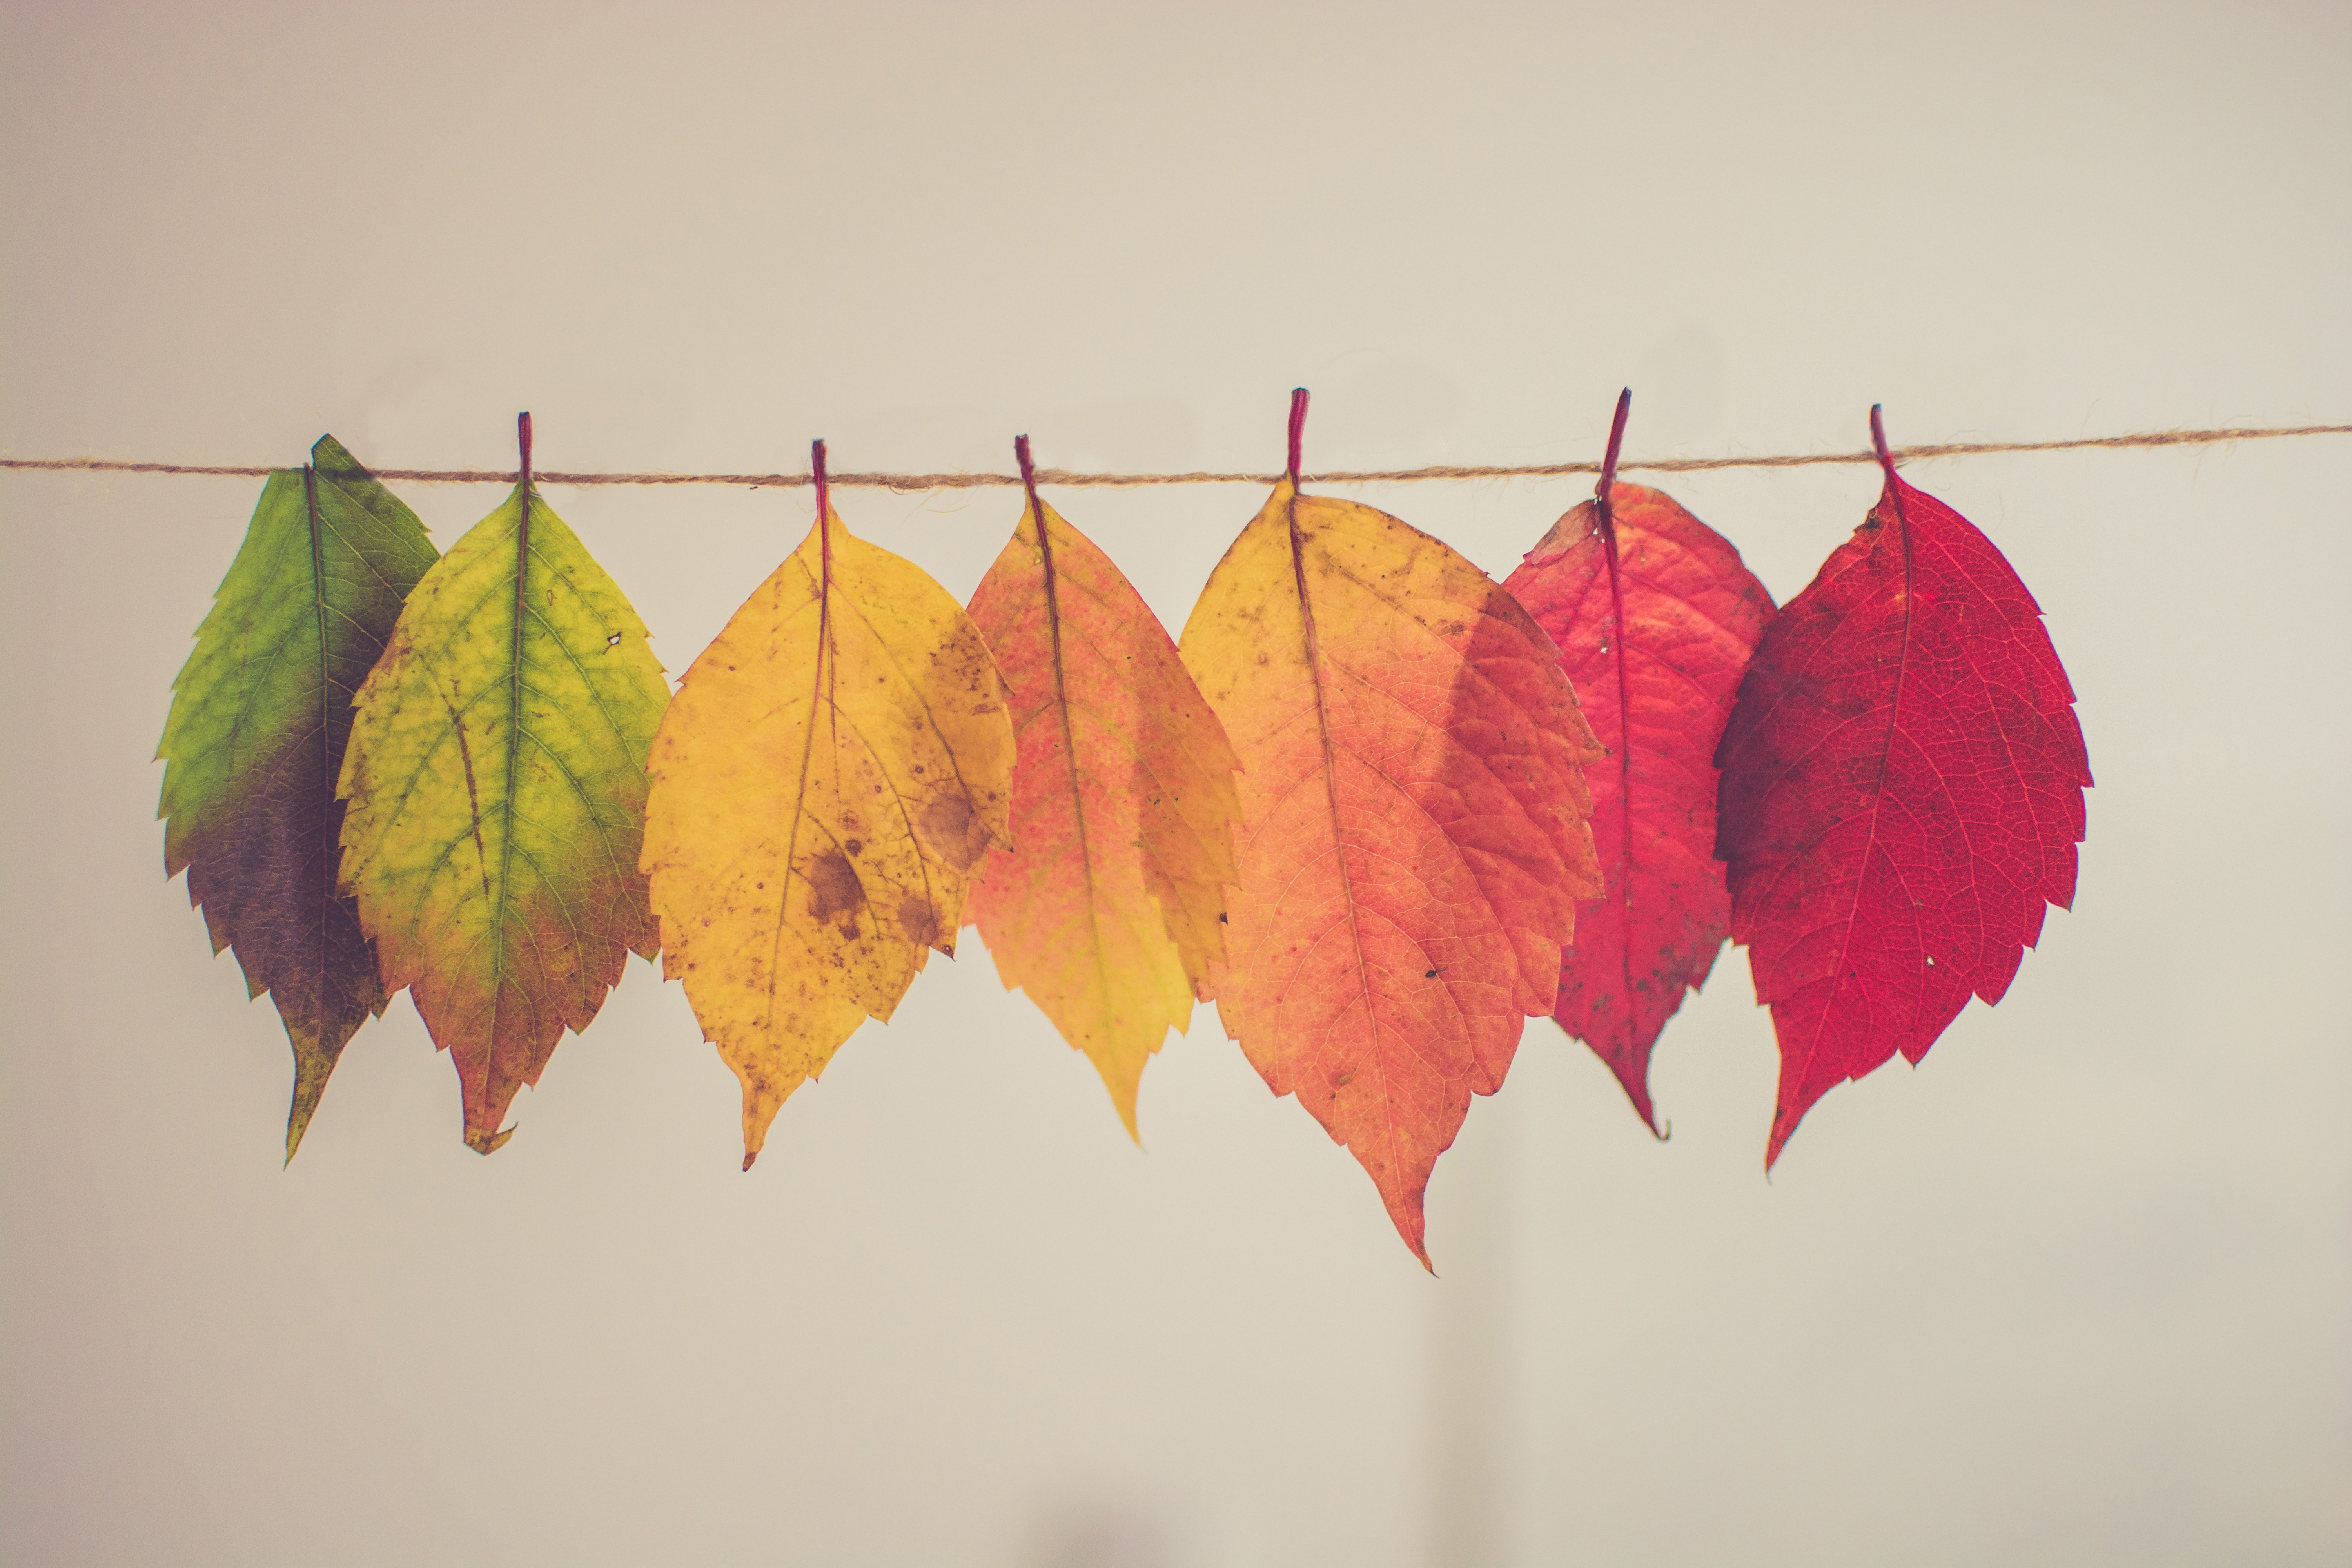 multi-colored leaves on a white background